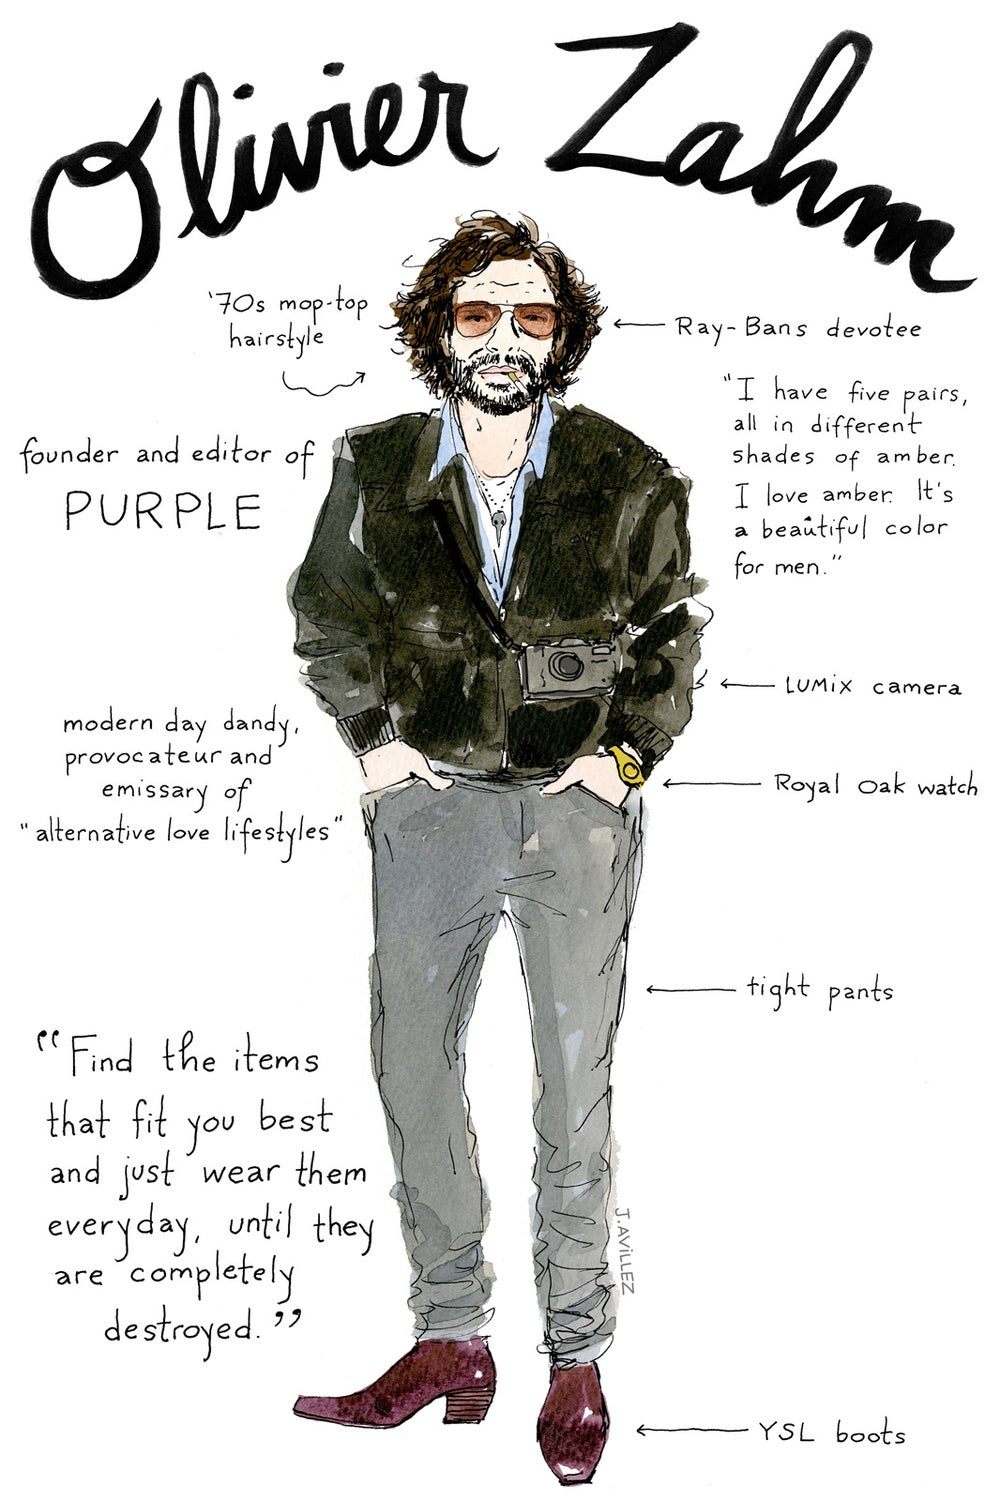 Olivier Zahm — founder and editor